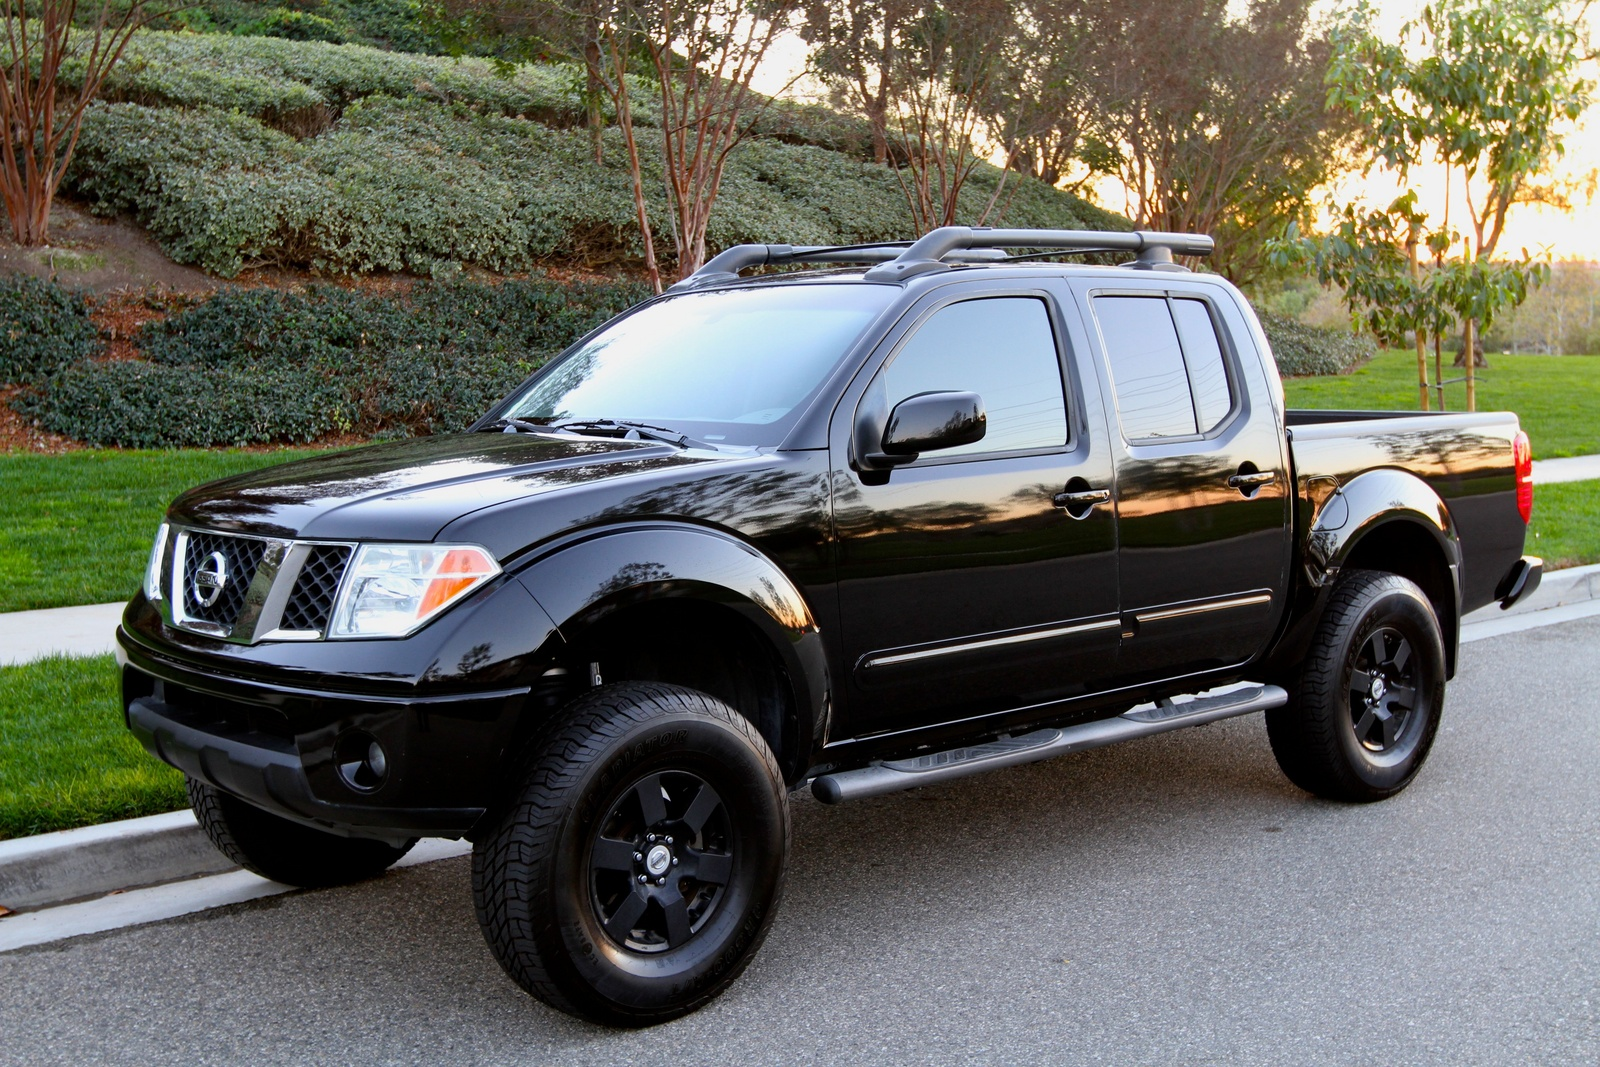 2006 nissan frontier pictures cargurus. Black Bedroom Furniture Sets. Home Design Ideas